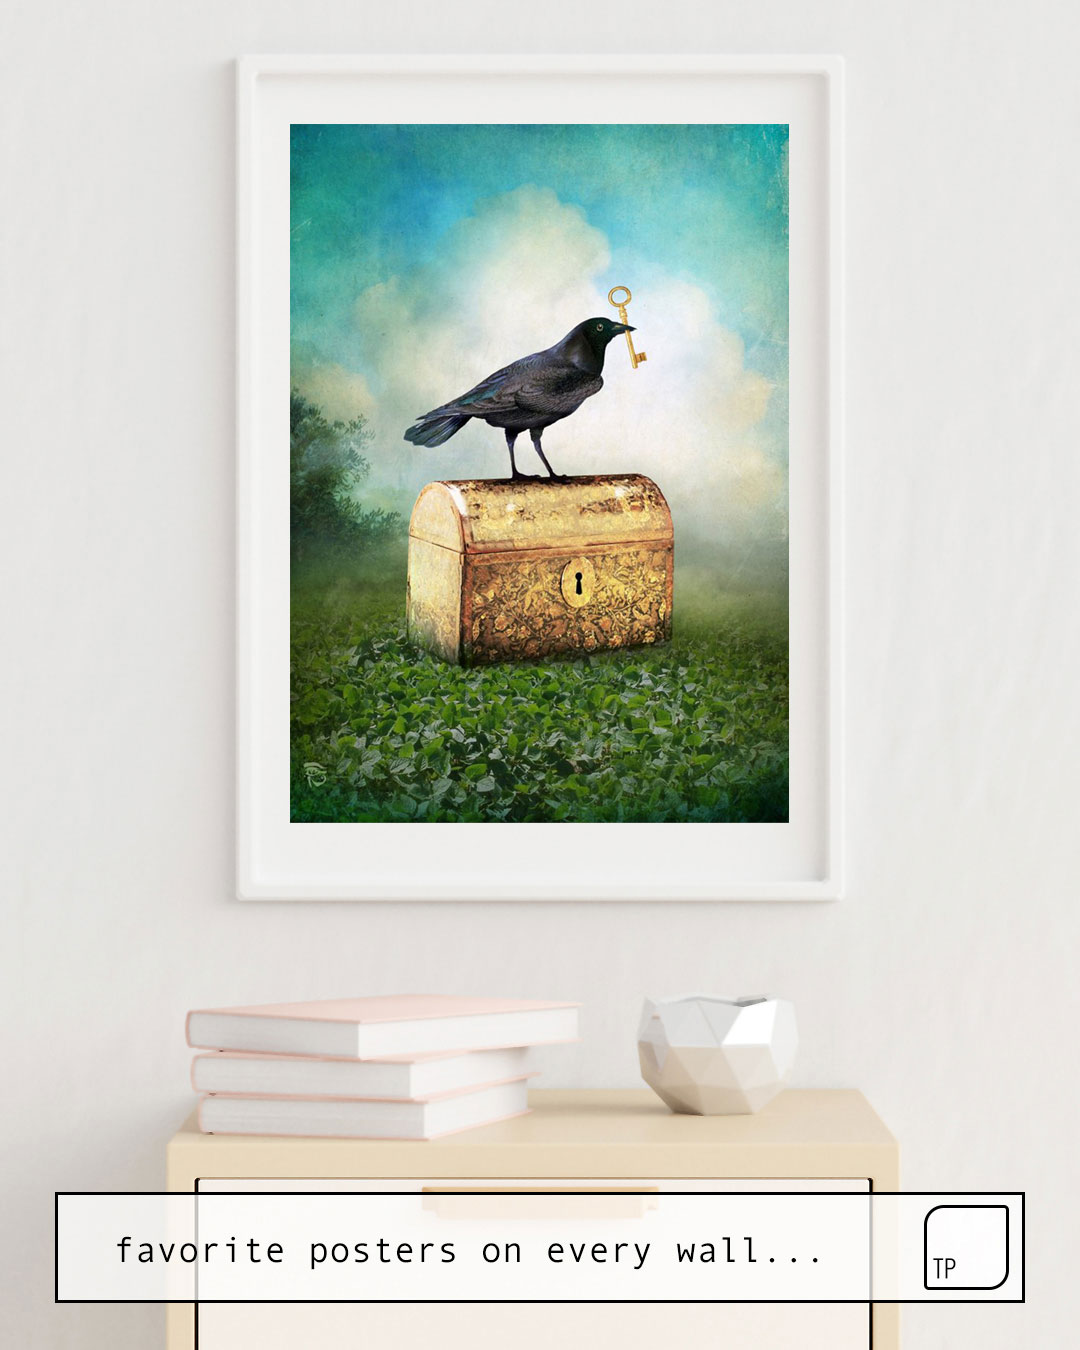 The photo shows an example of furnishing with the motif FIND YOUR WAY by Christian Schloe as mural